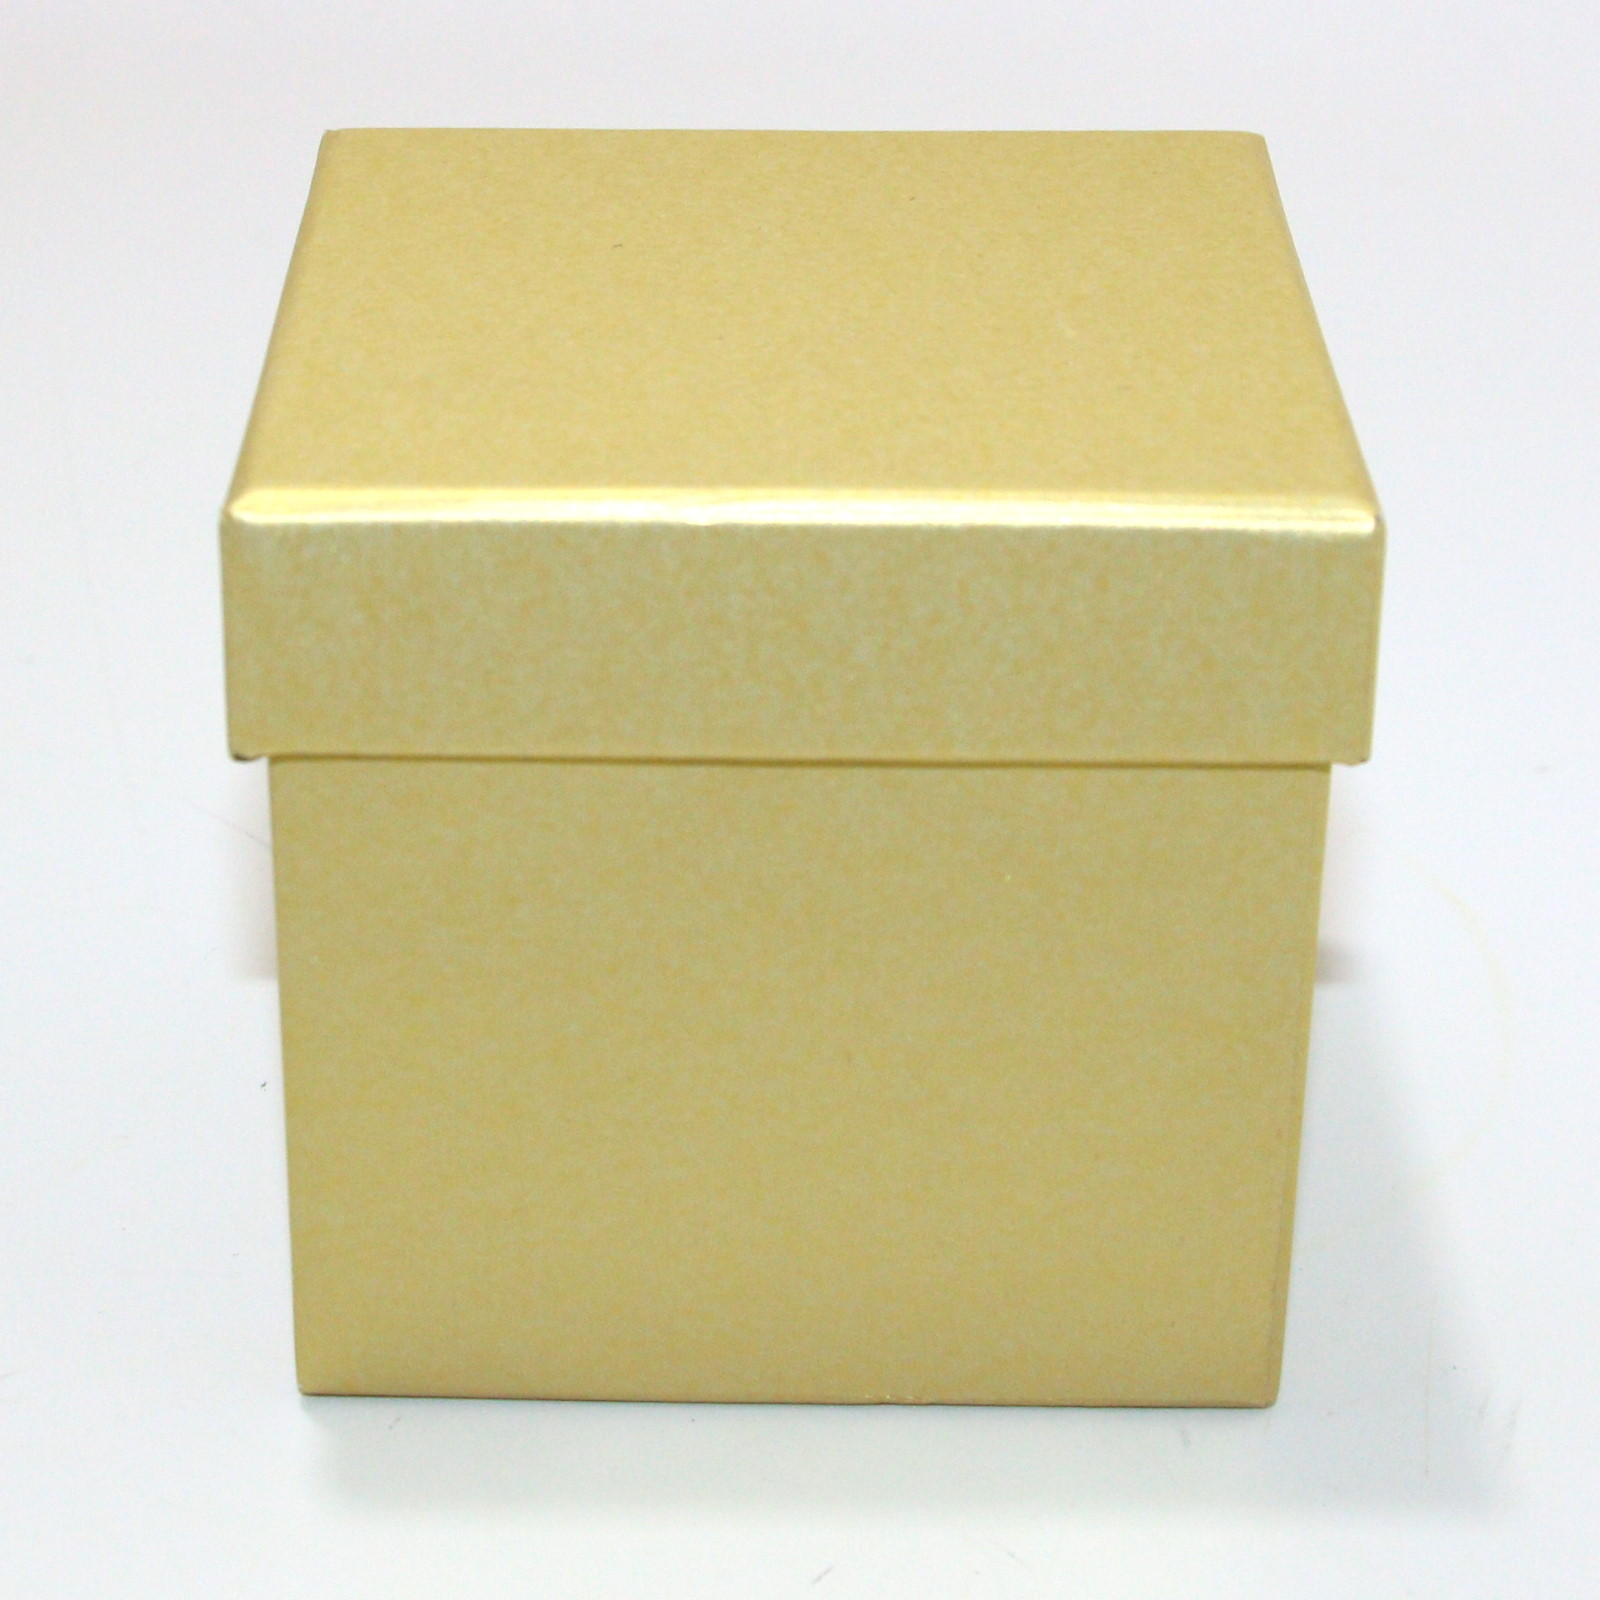 The Gift (Gold Limited Edition) by Angelo Carbone